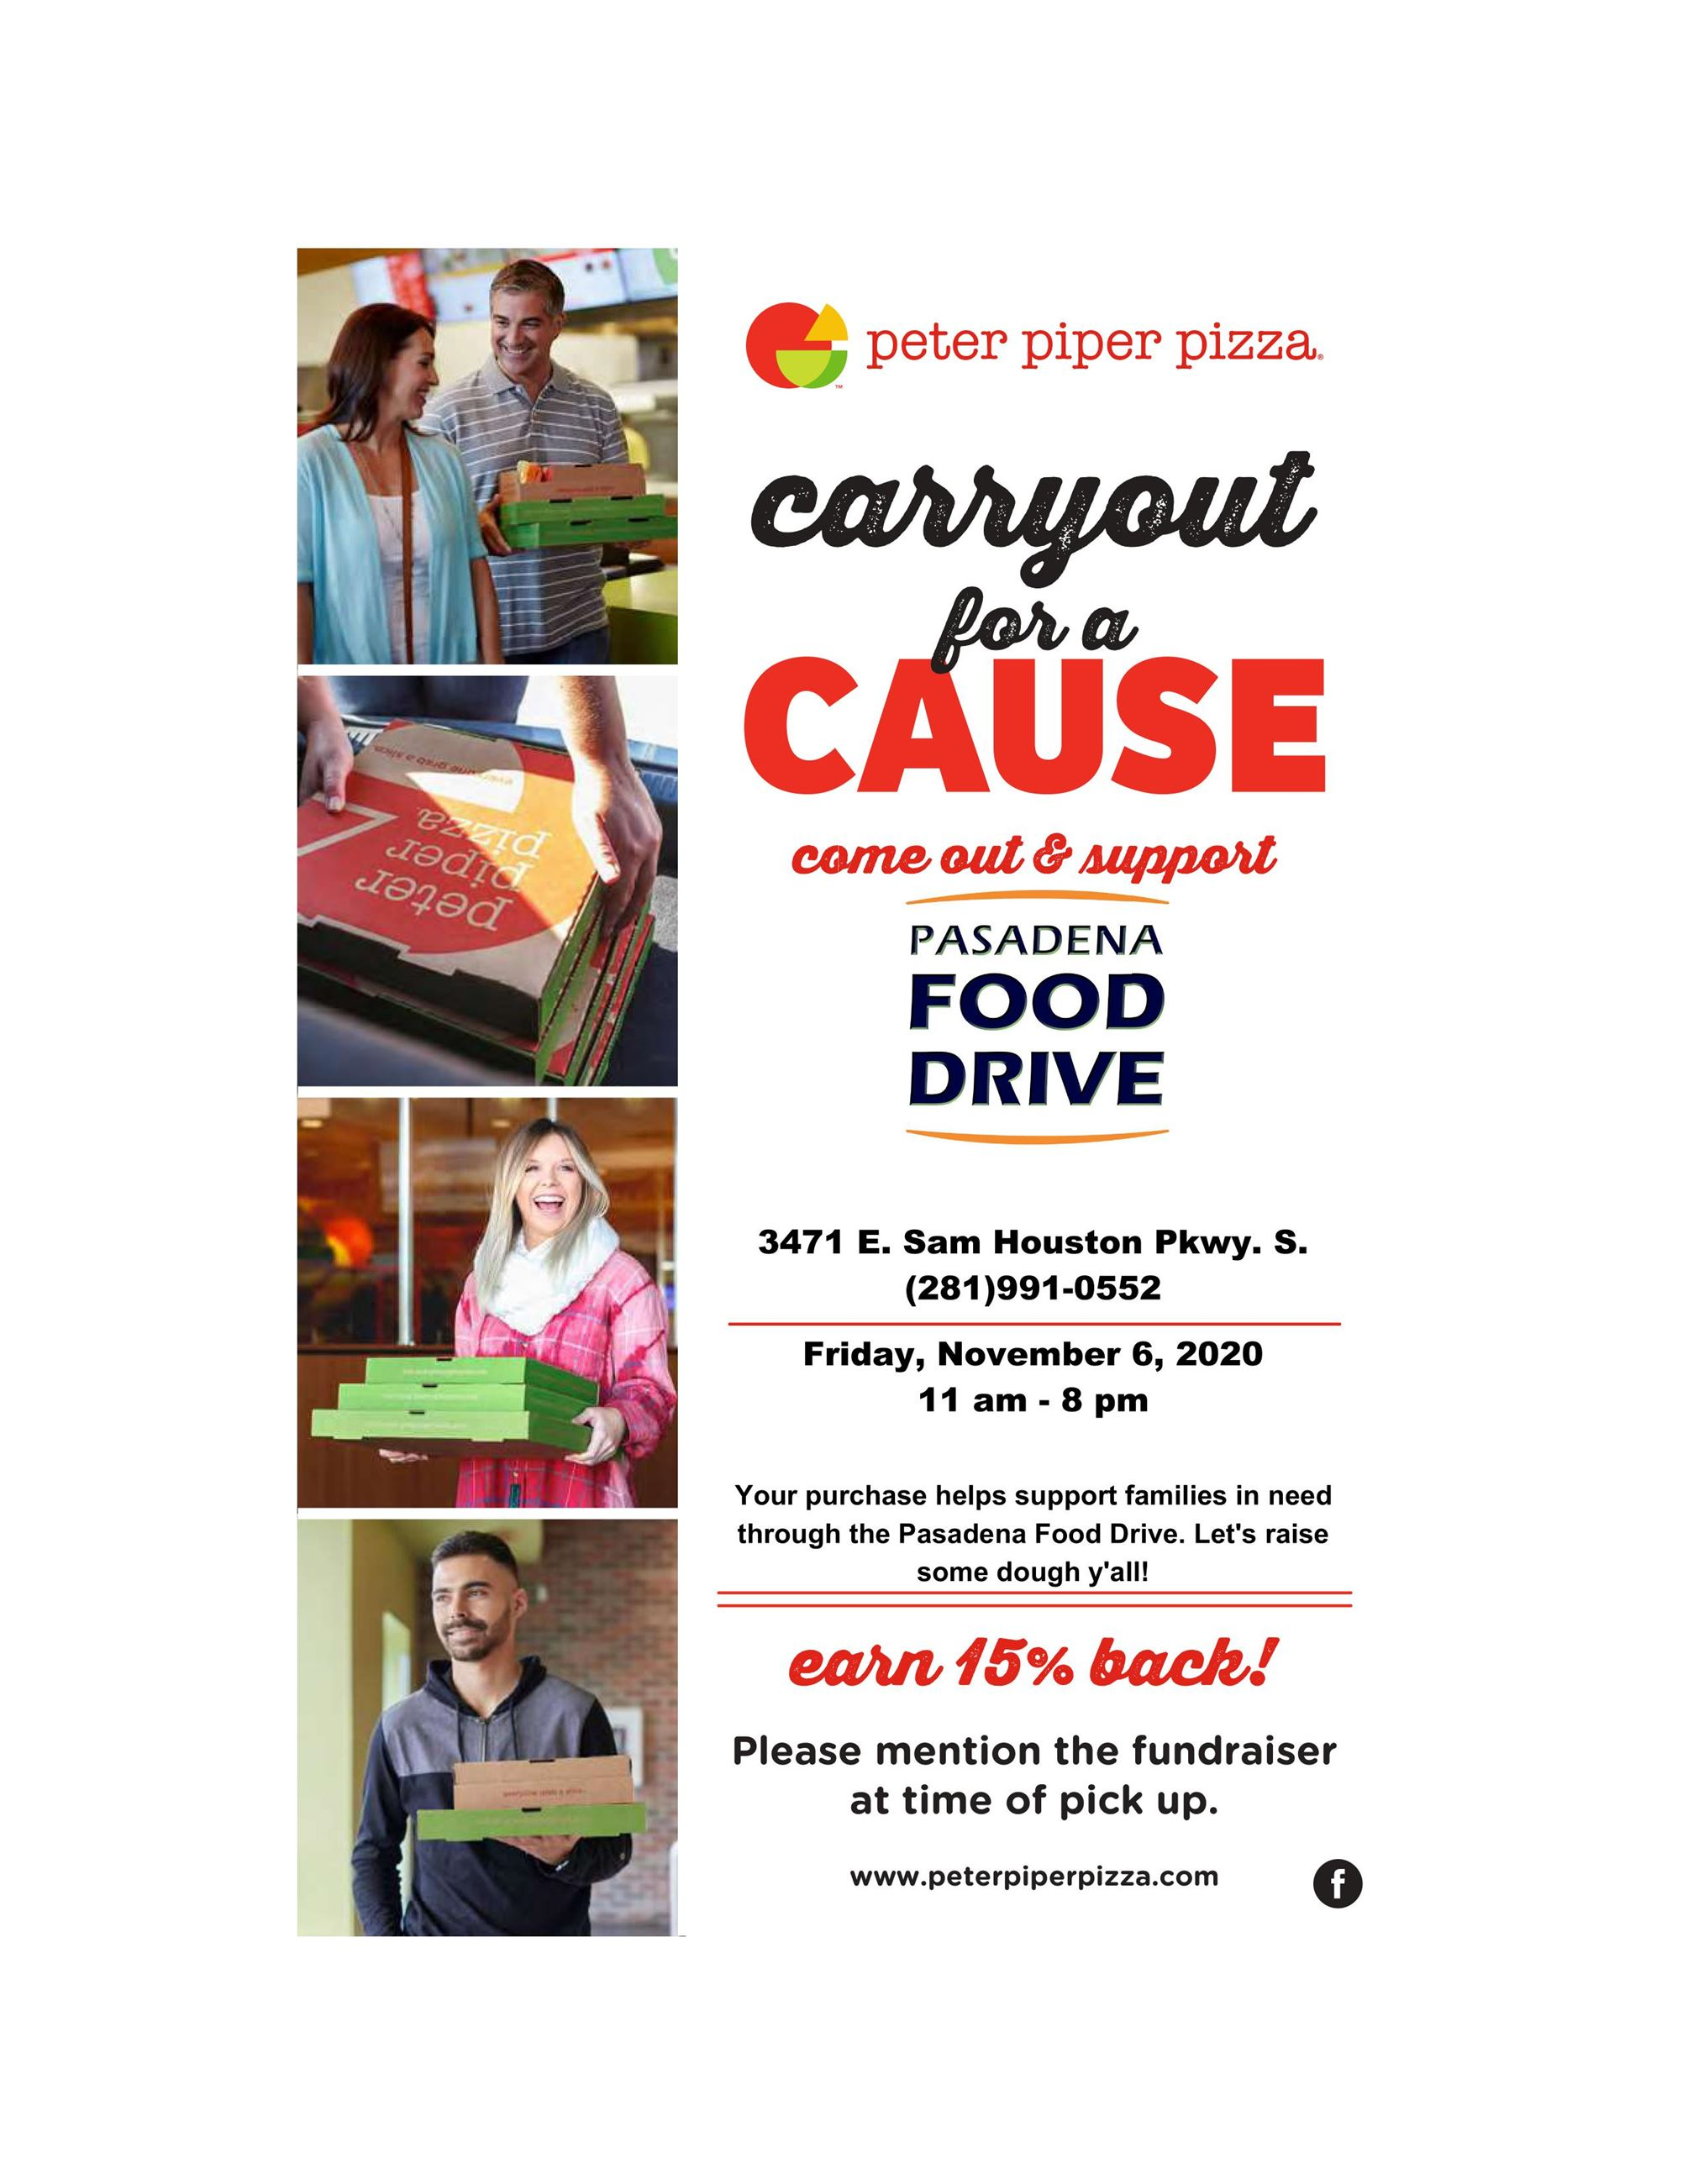 Peter Piper food drive fundraiser